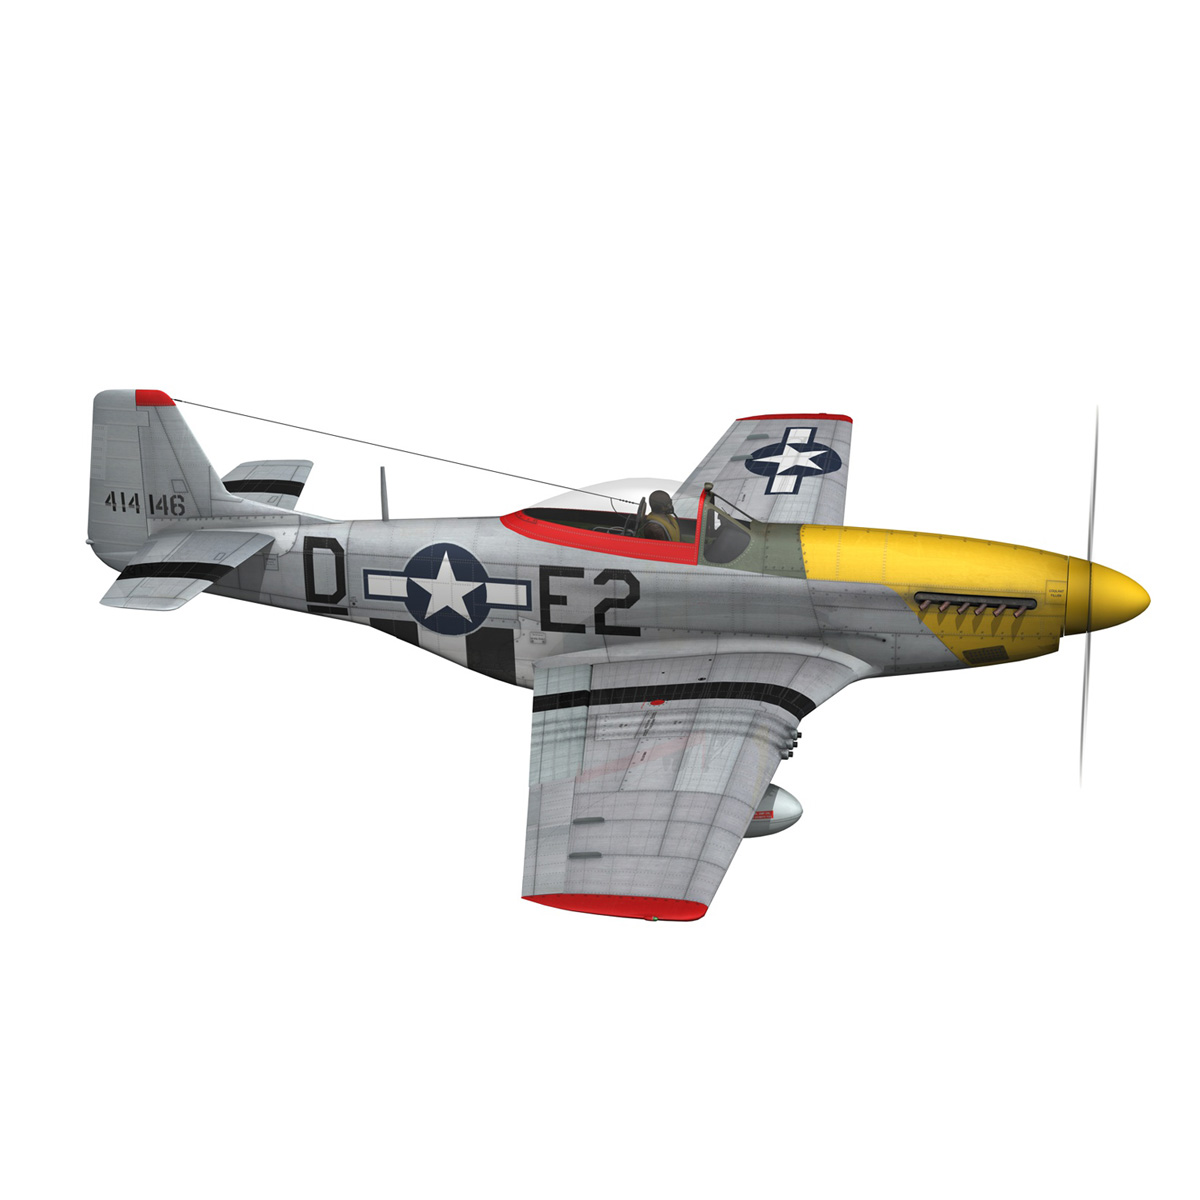 north american p-51d – mustang – detroit miss 3d model 3ds fbx c4d lwo obj 267598